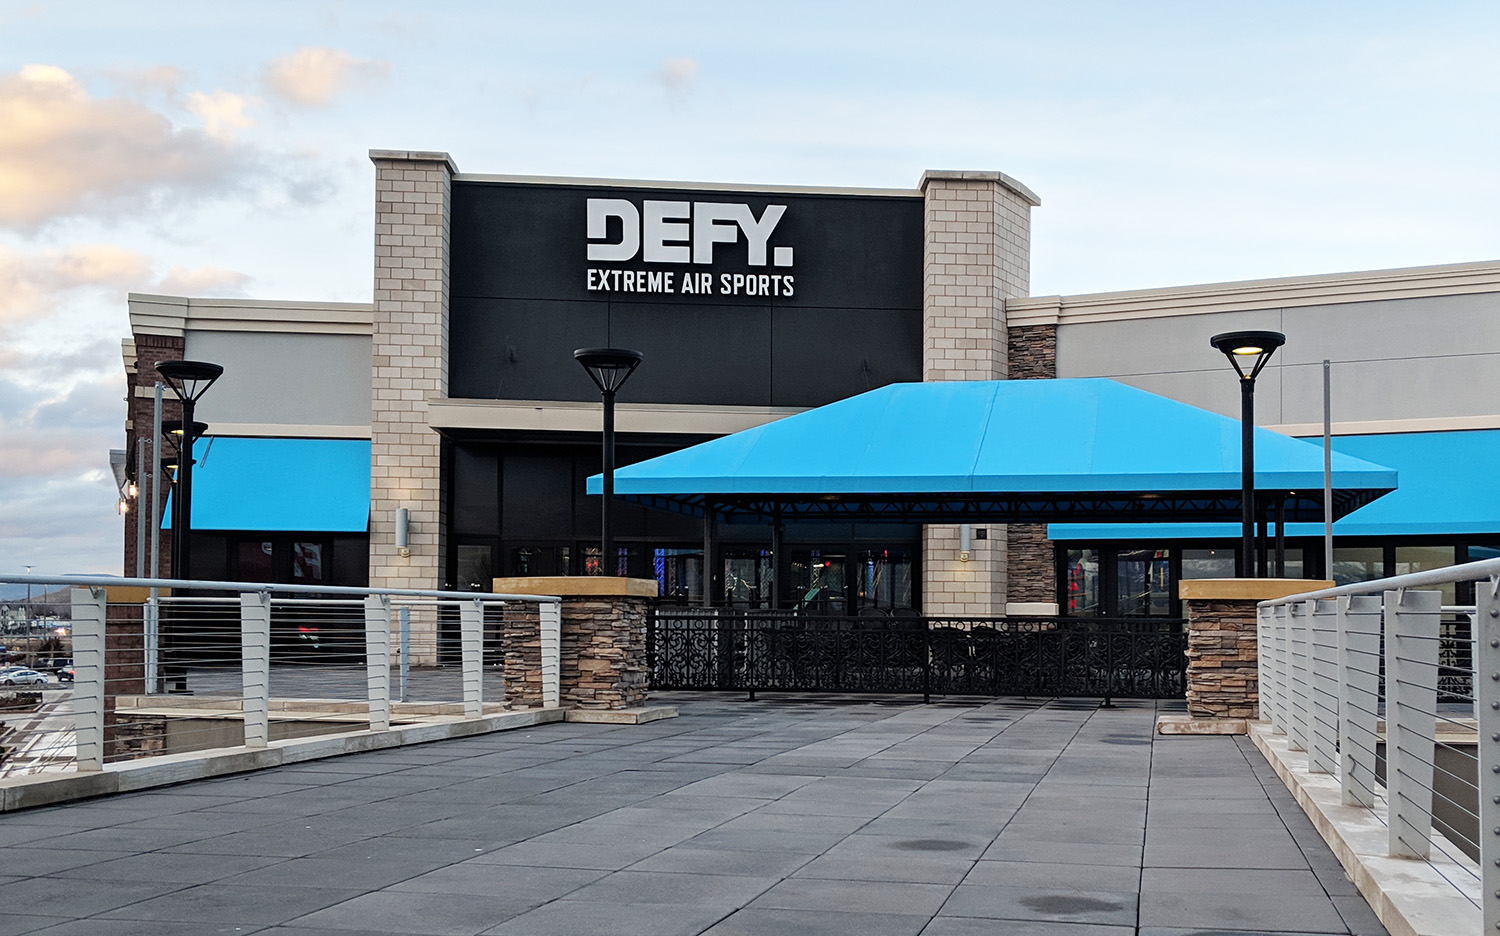 The new Defy opened above Nike early in 2019.